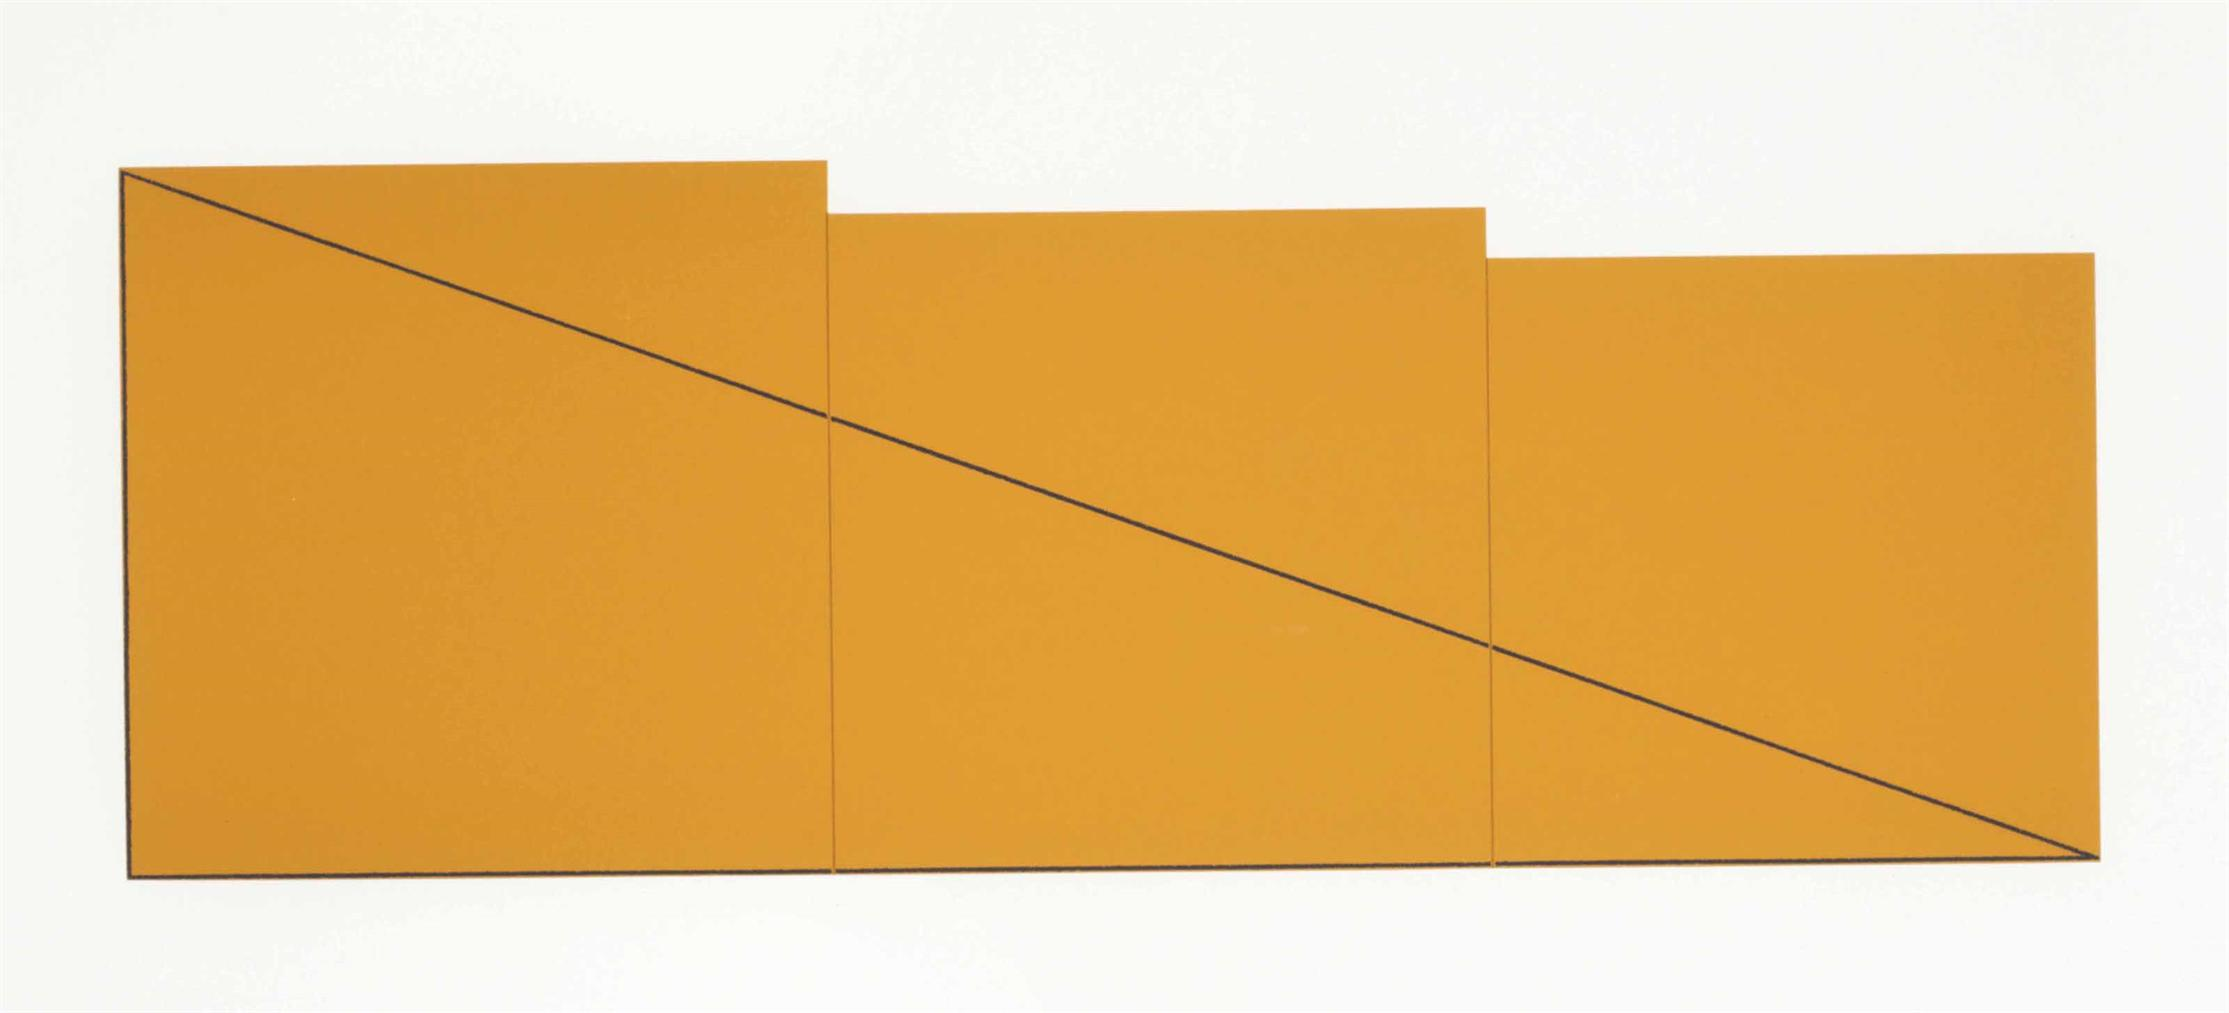 Robert Mangold-A Book Of Silk Screen Prints: Multiple Panel Paintings 1973-1976, Edition Domberger & Parasol Press S.A., Stuttgart And New York, 1992-1992